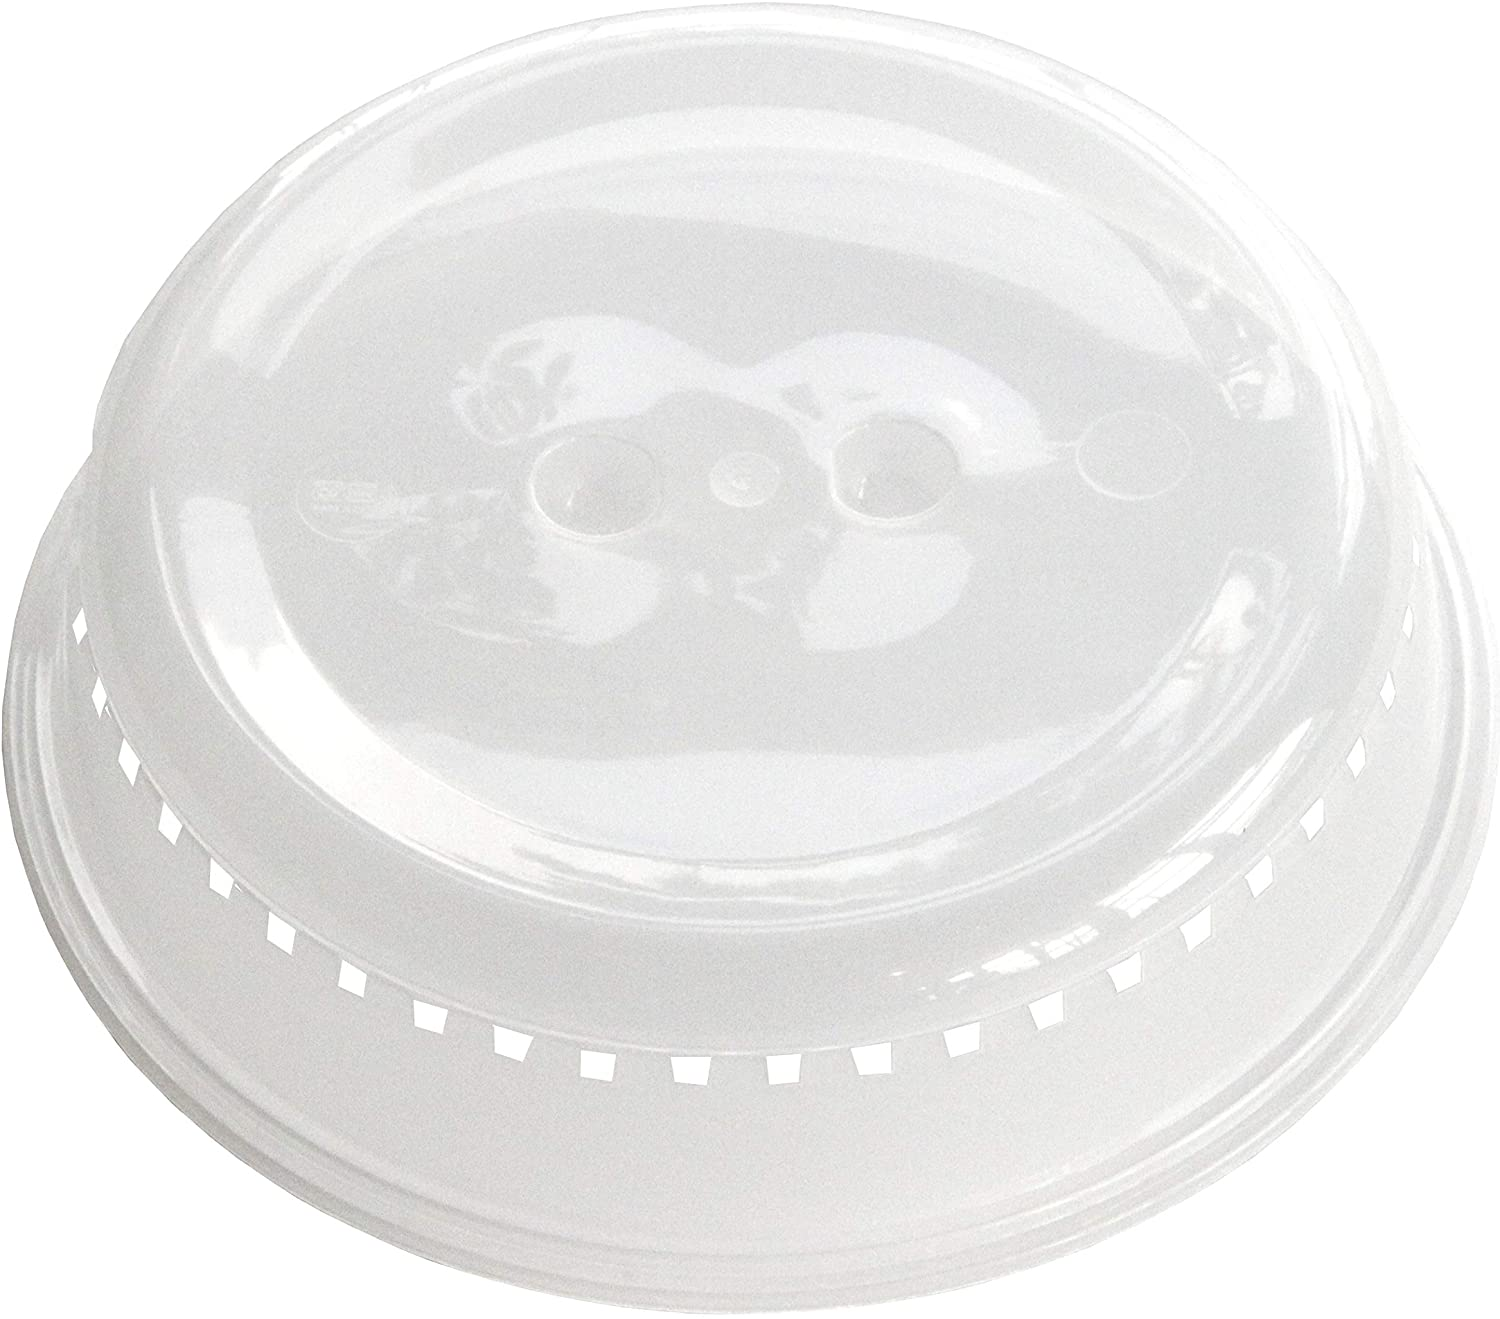 10 Value 2-Pack Microwave Cover Clear